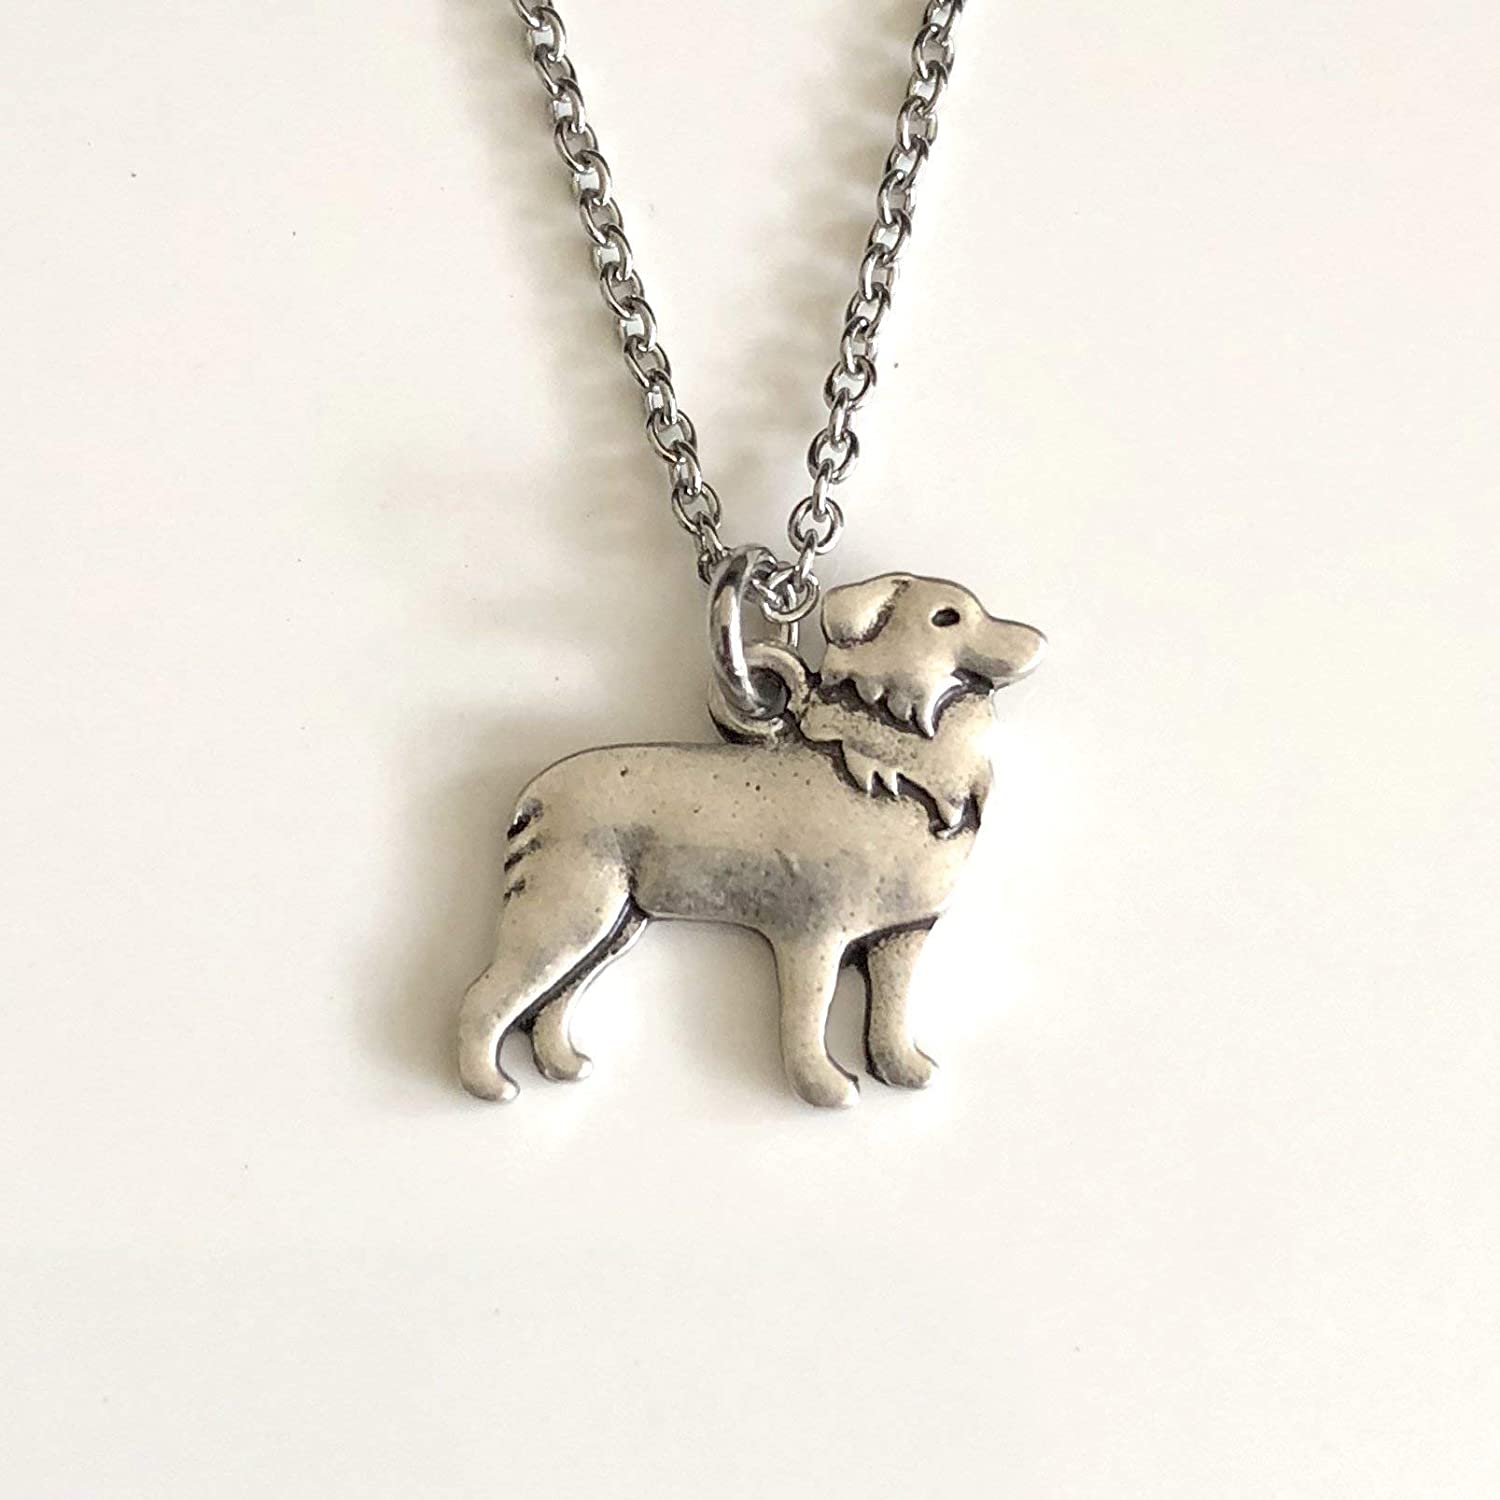 "BORDER COLLIE DOG PENDANT NECKLACE WITH 18/"" SILVER CHAIN LOVELY GIFT"